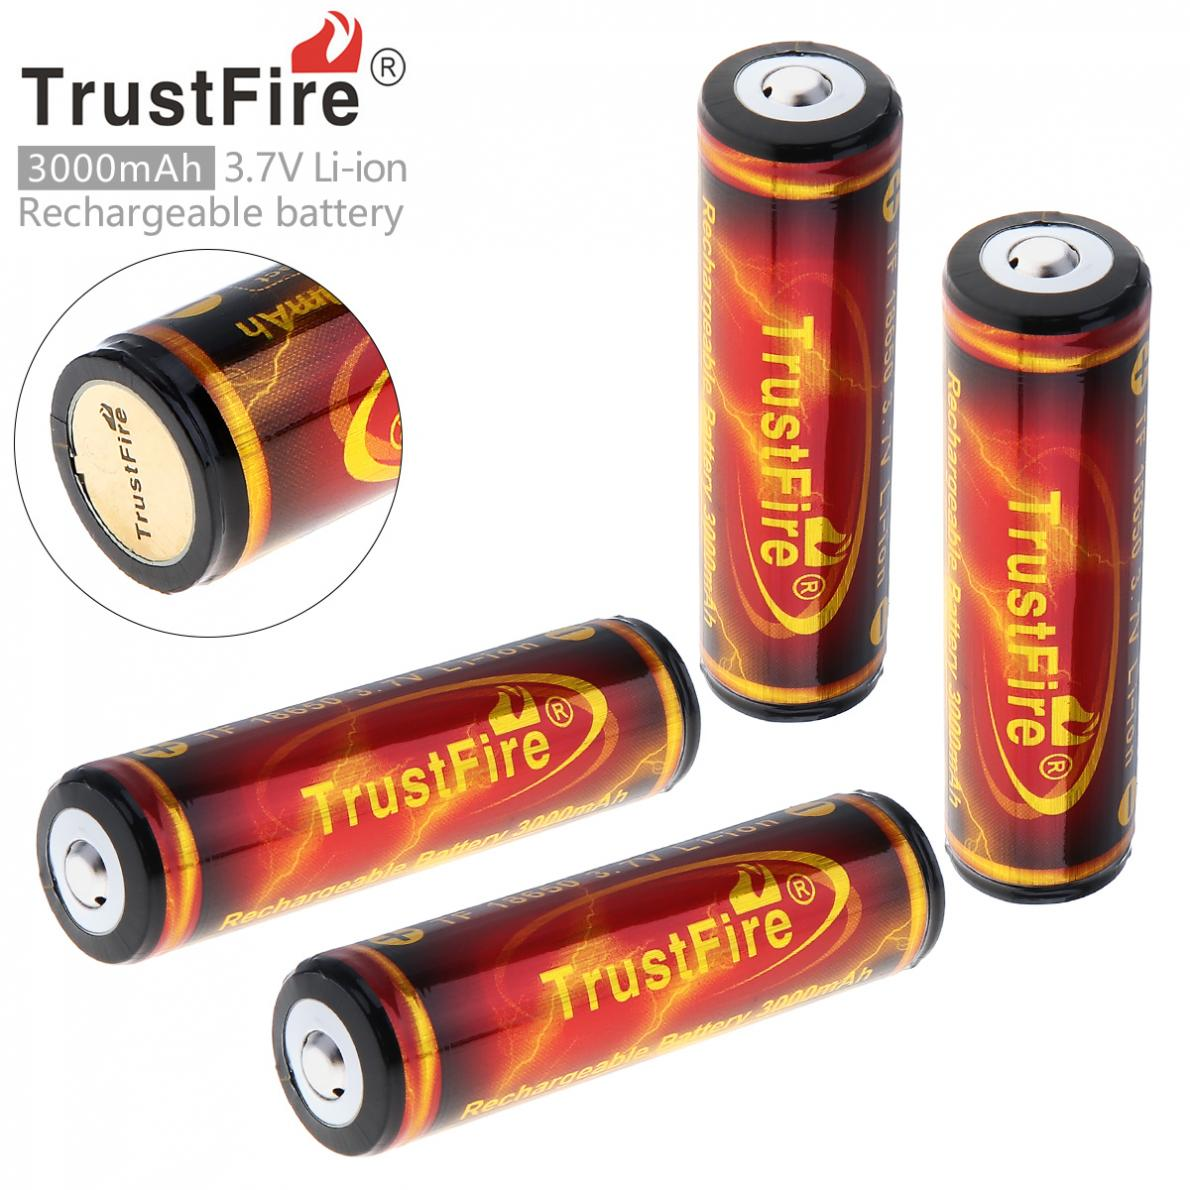 все цены на 4 Pieces/Lot TrustFire Genuine Full Capacity 3000mAh 18650 3.7V Li-ion Rechargeable Battery with Protected PCB